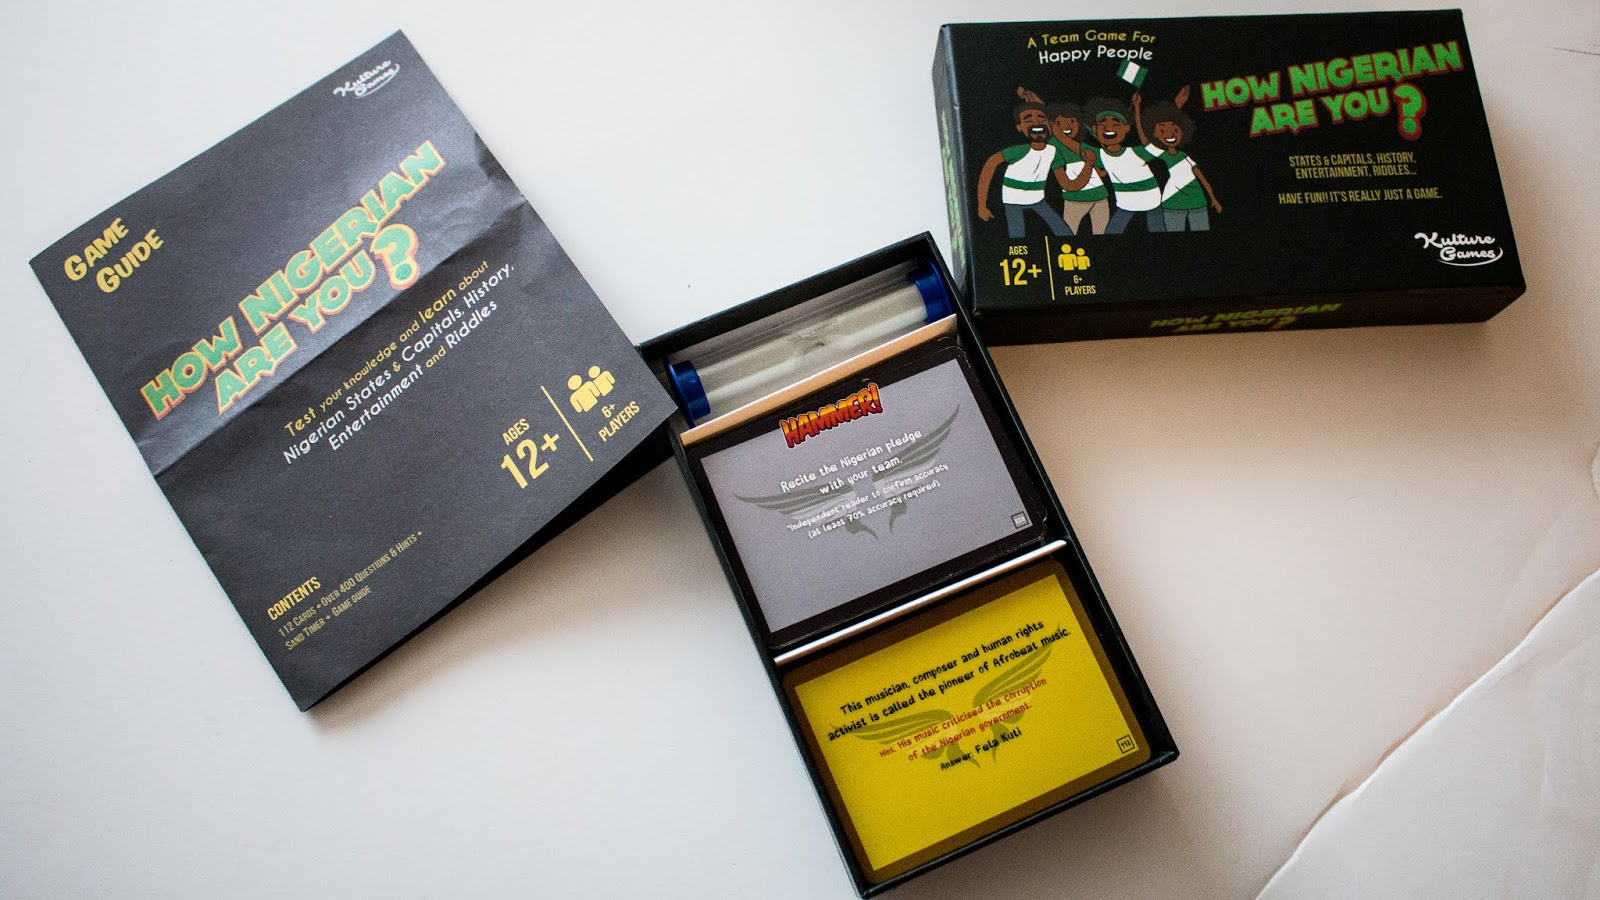 The do it yourself lady how nigerian are you card game fun with the game came in a nicely packaged box solutioingenieria Gallery